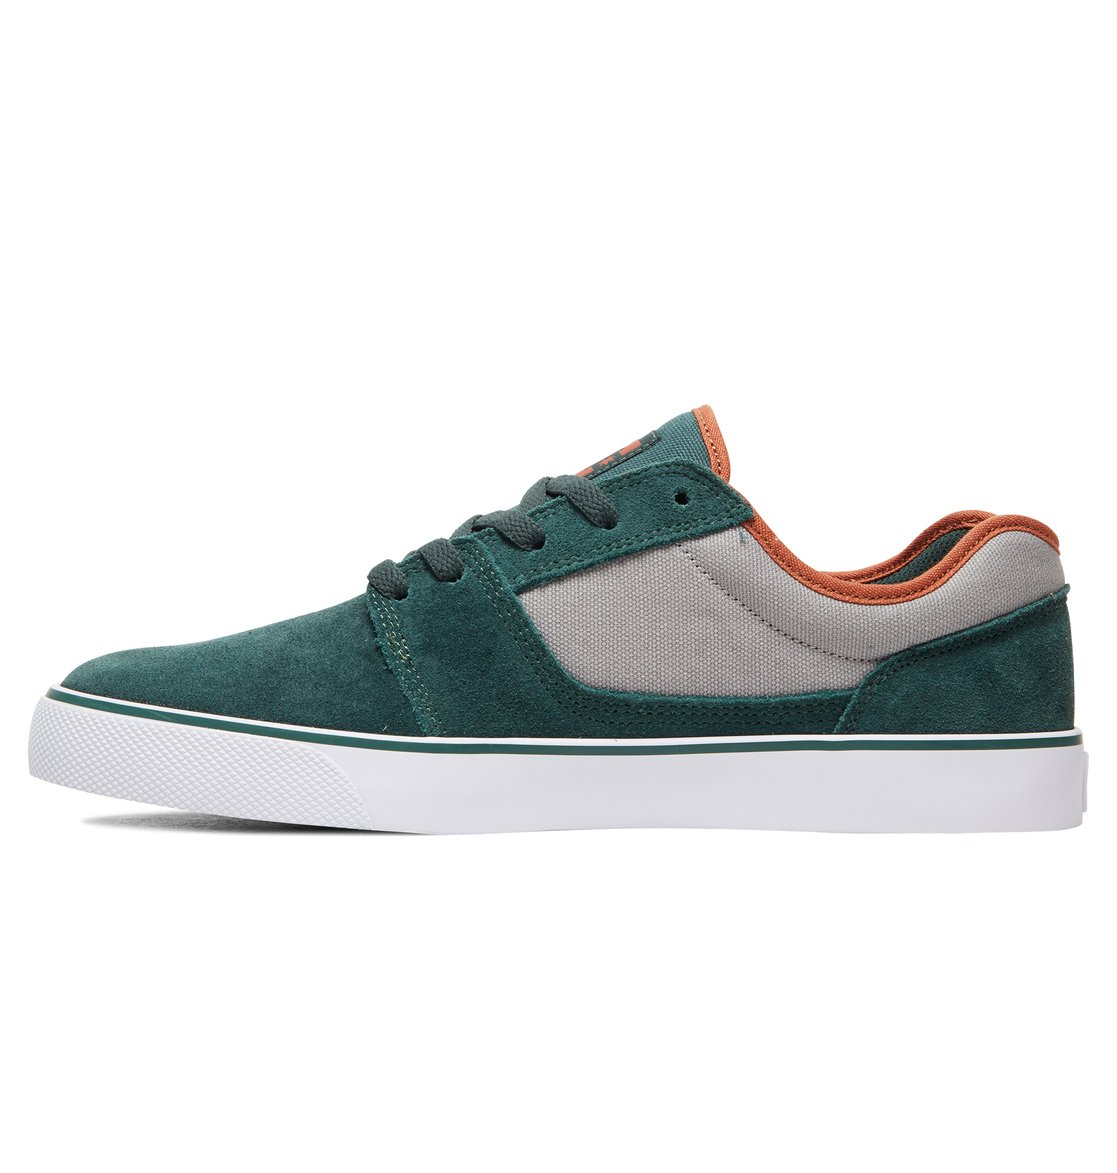 DC-Shoes-Tonik-Baskets-pour-Homme-302905 miniature 31